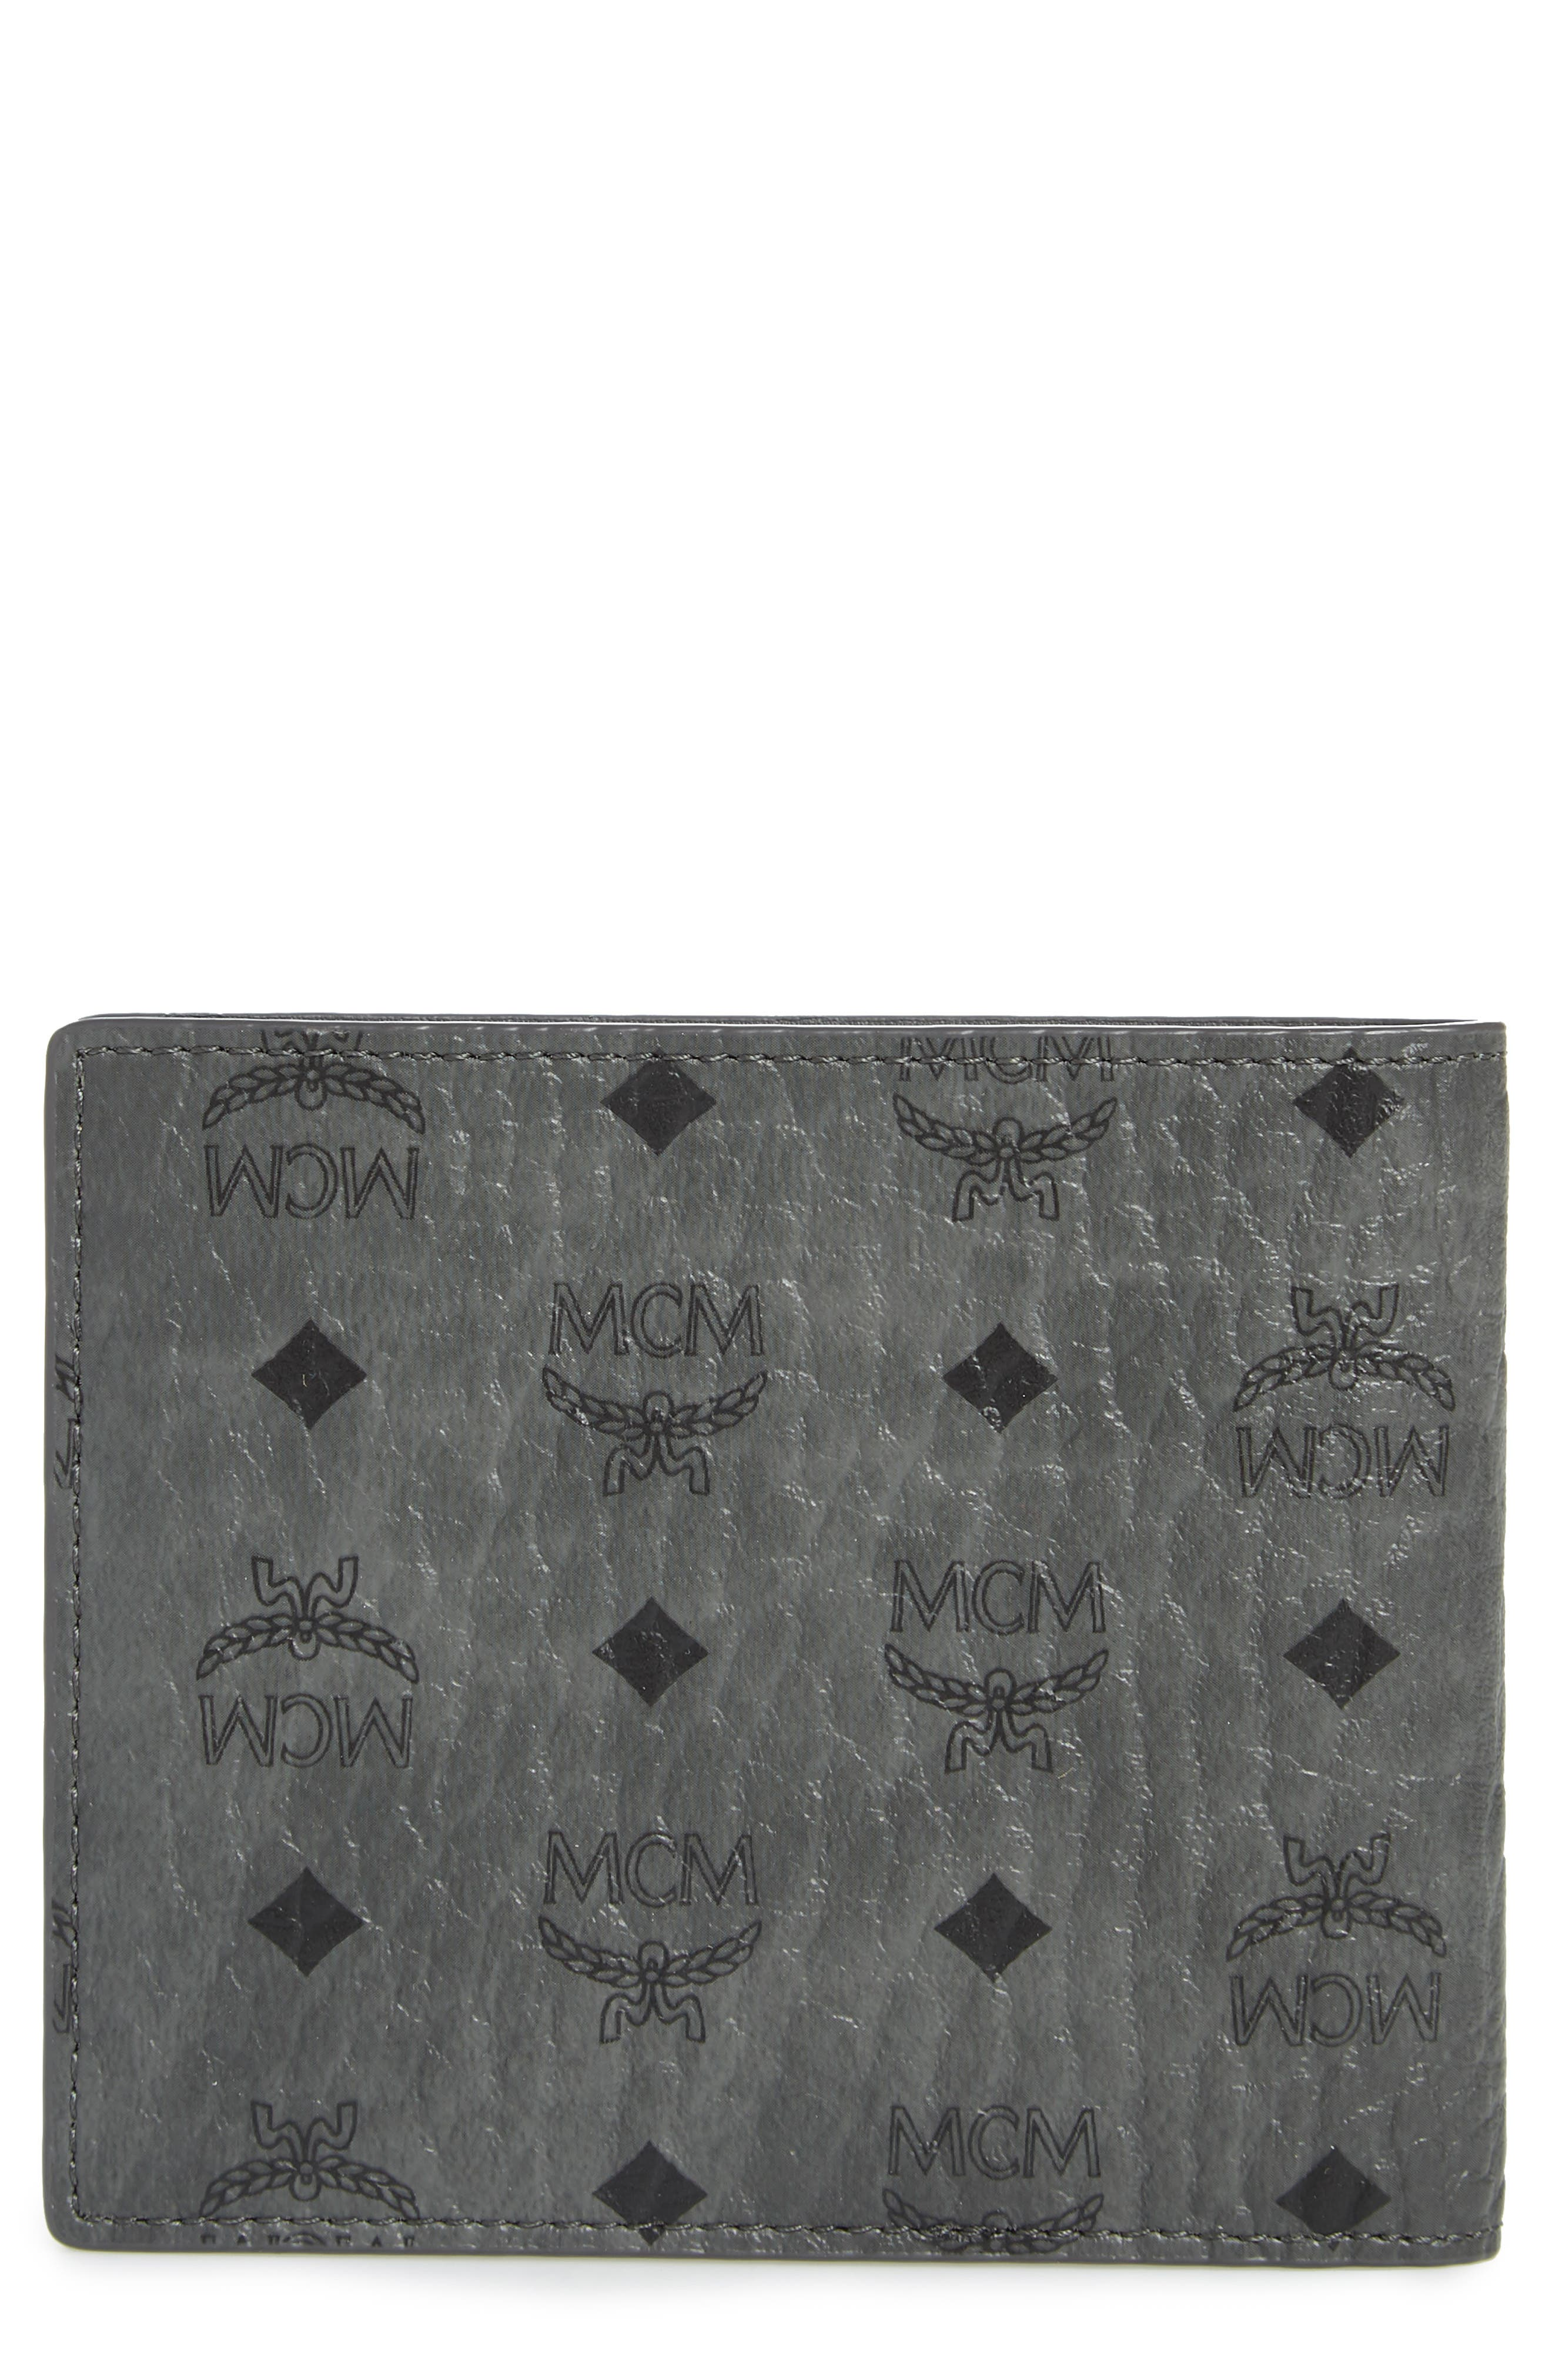 Logo Coated Canvas & Leather Wallet,                         Main,                         color, PHANTOM GREY